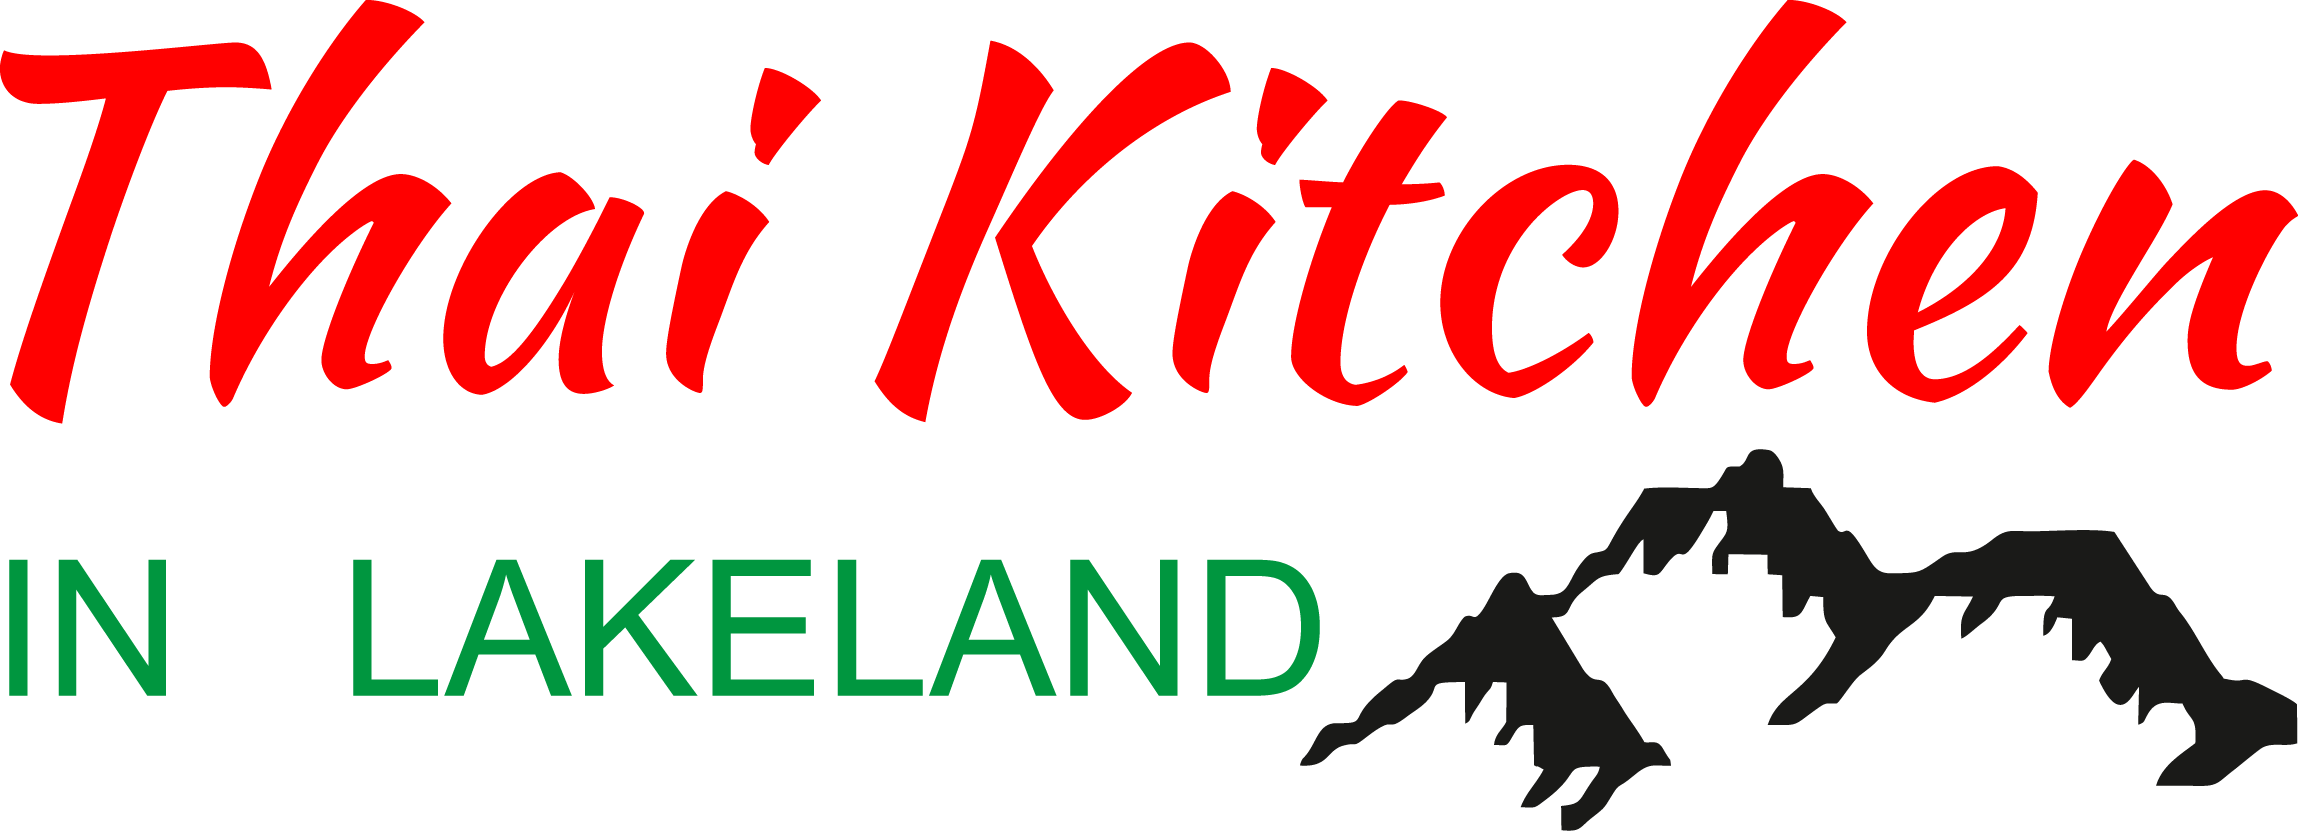 thai kitchen in lakleland logo